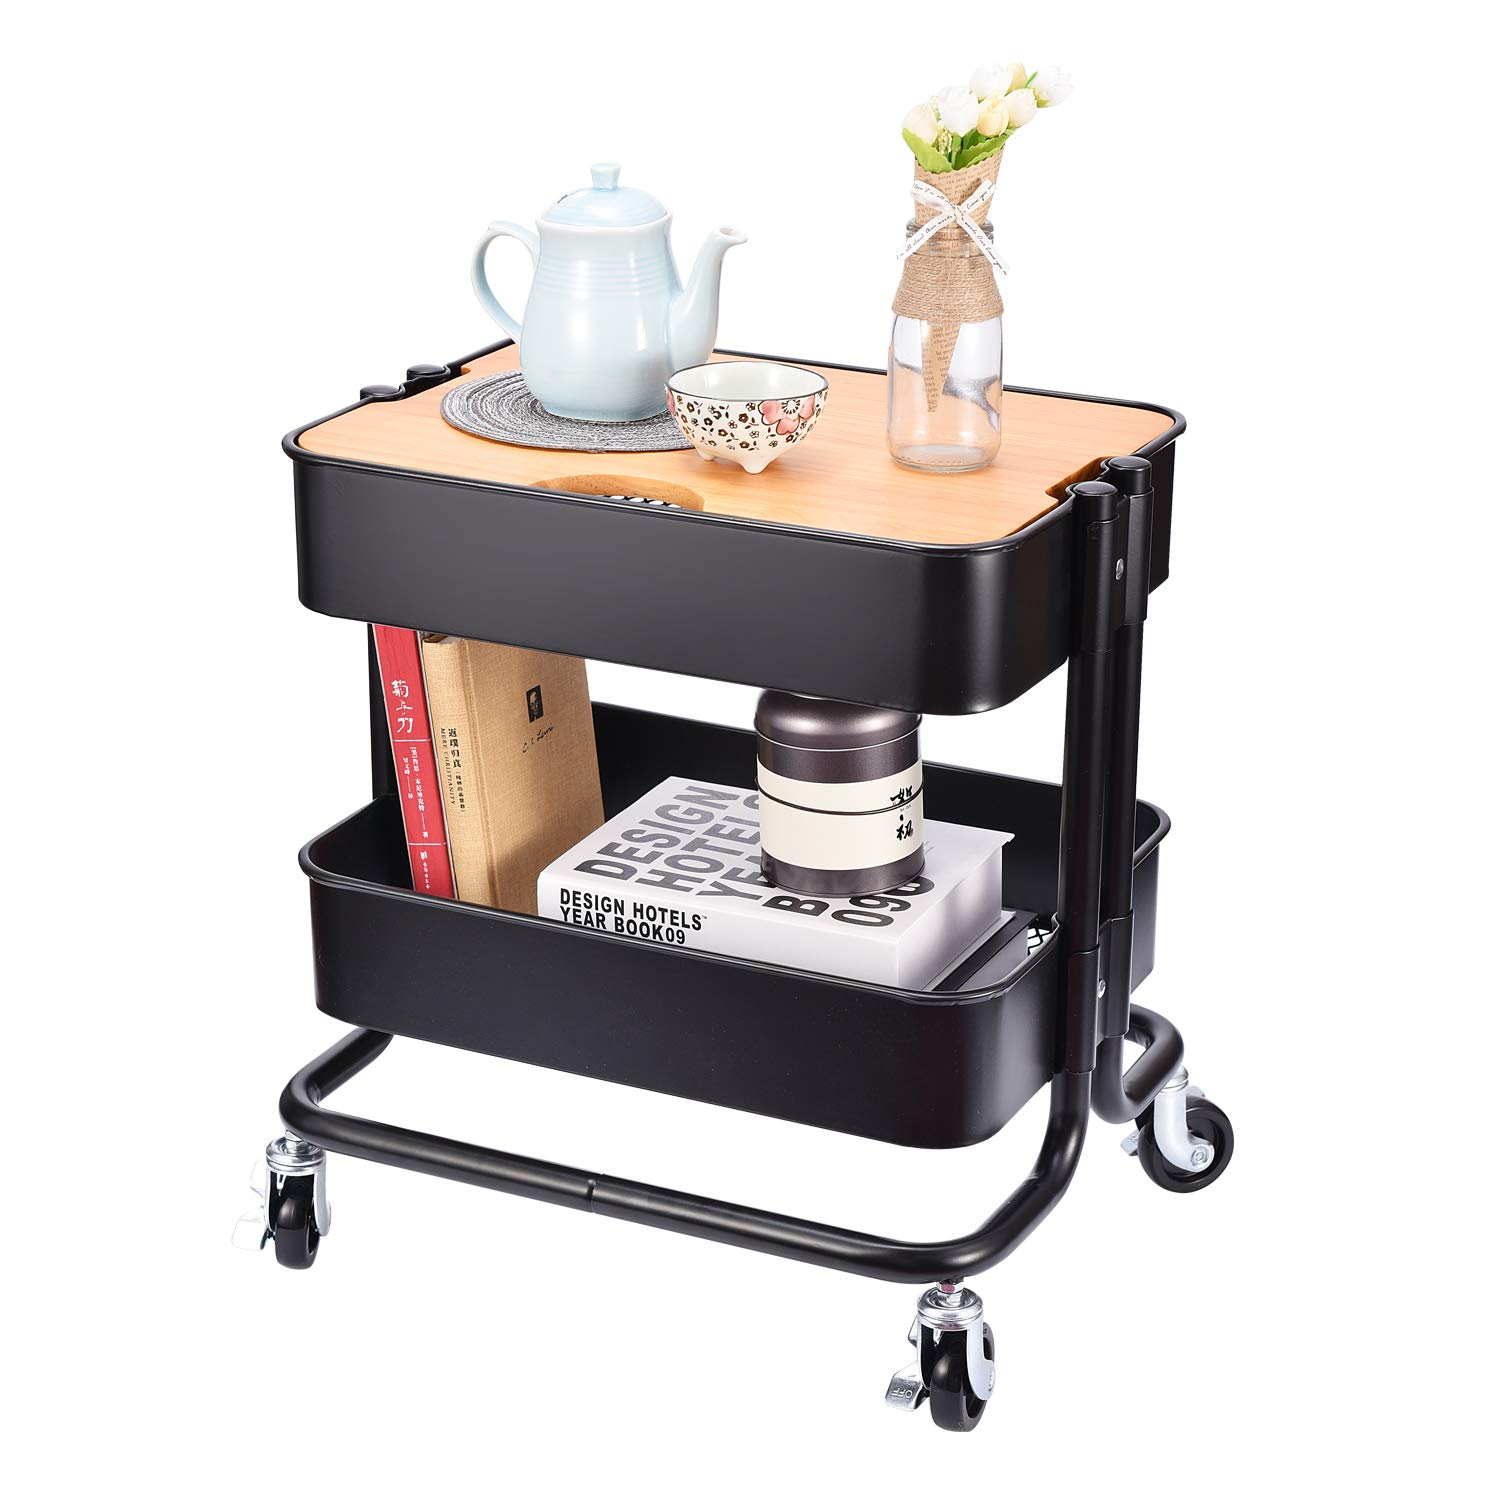 2-Tier Metal Utility Rolling Cart Storage Side End Table with Cover Board for Office Home Kitchen Organization, Black